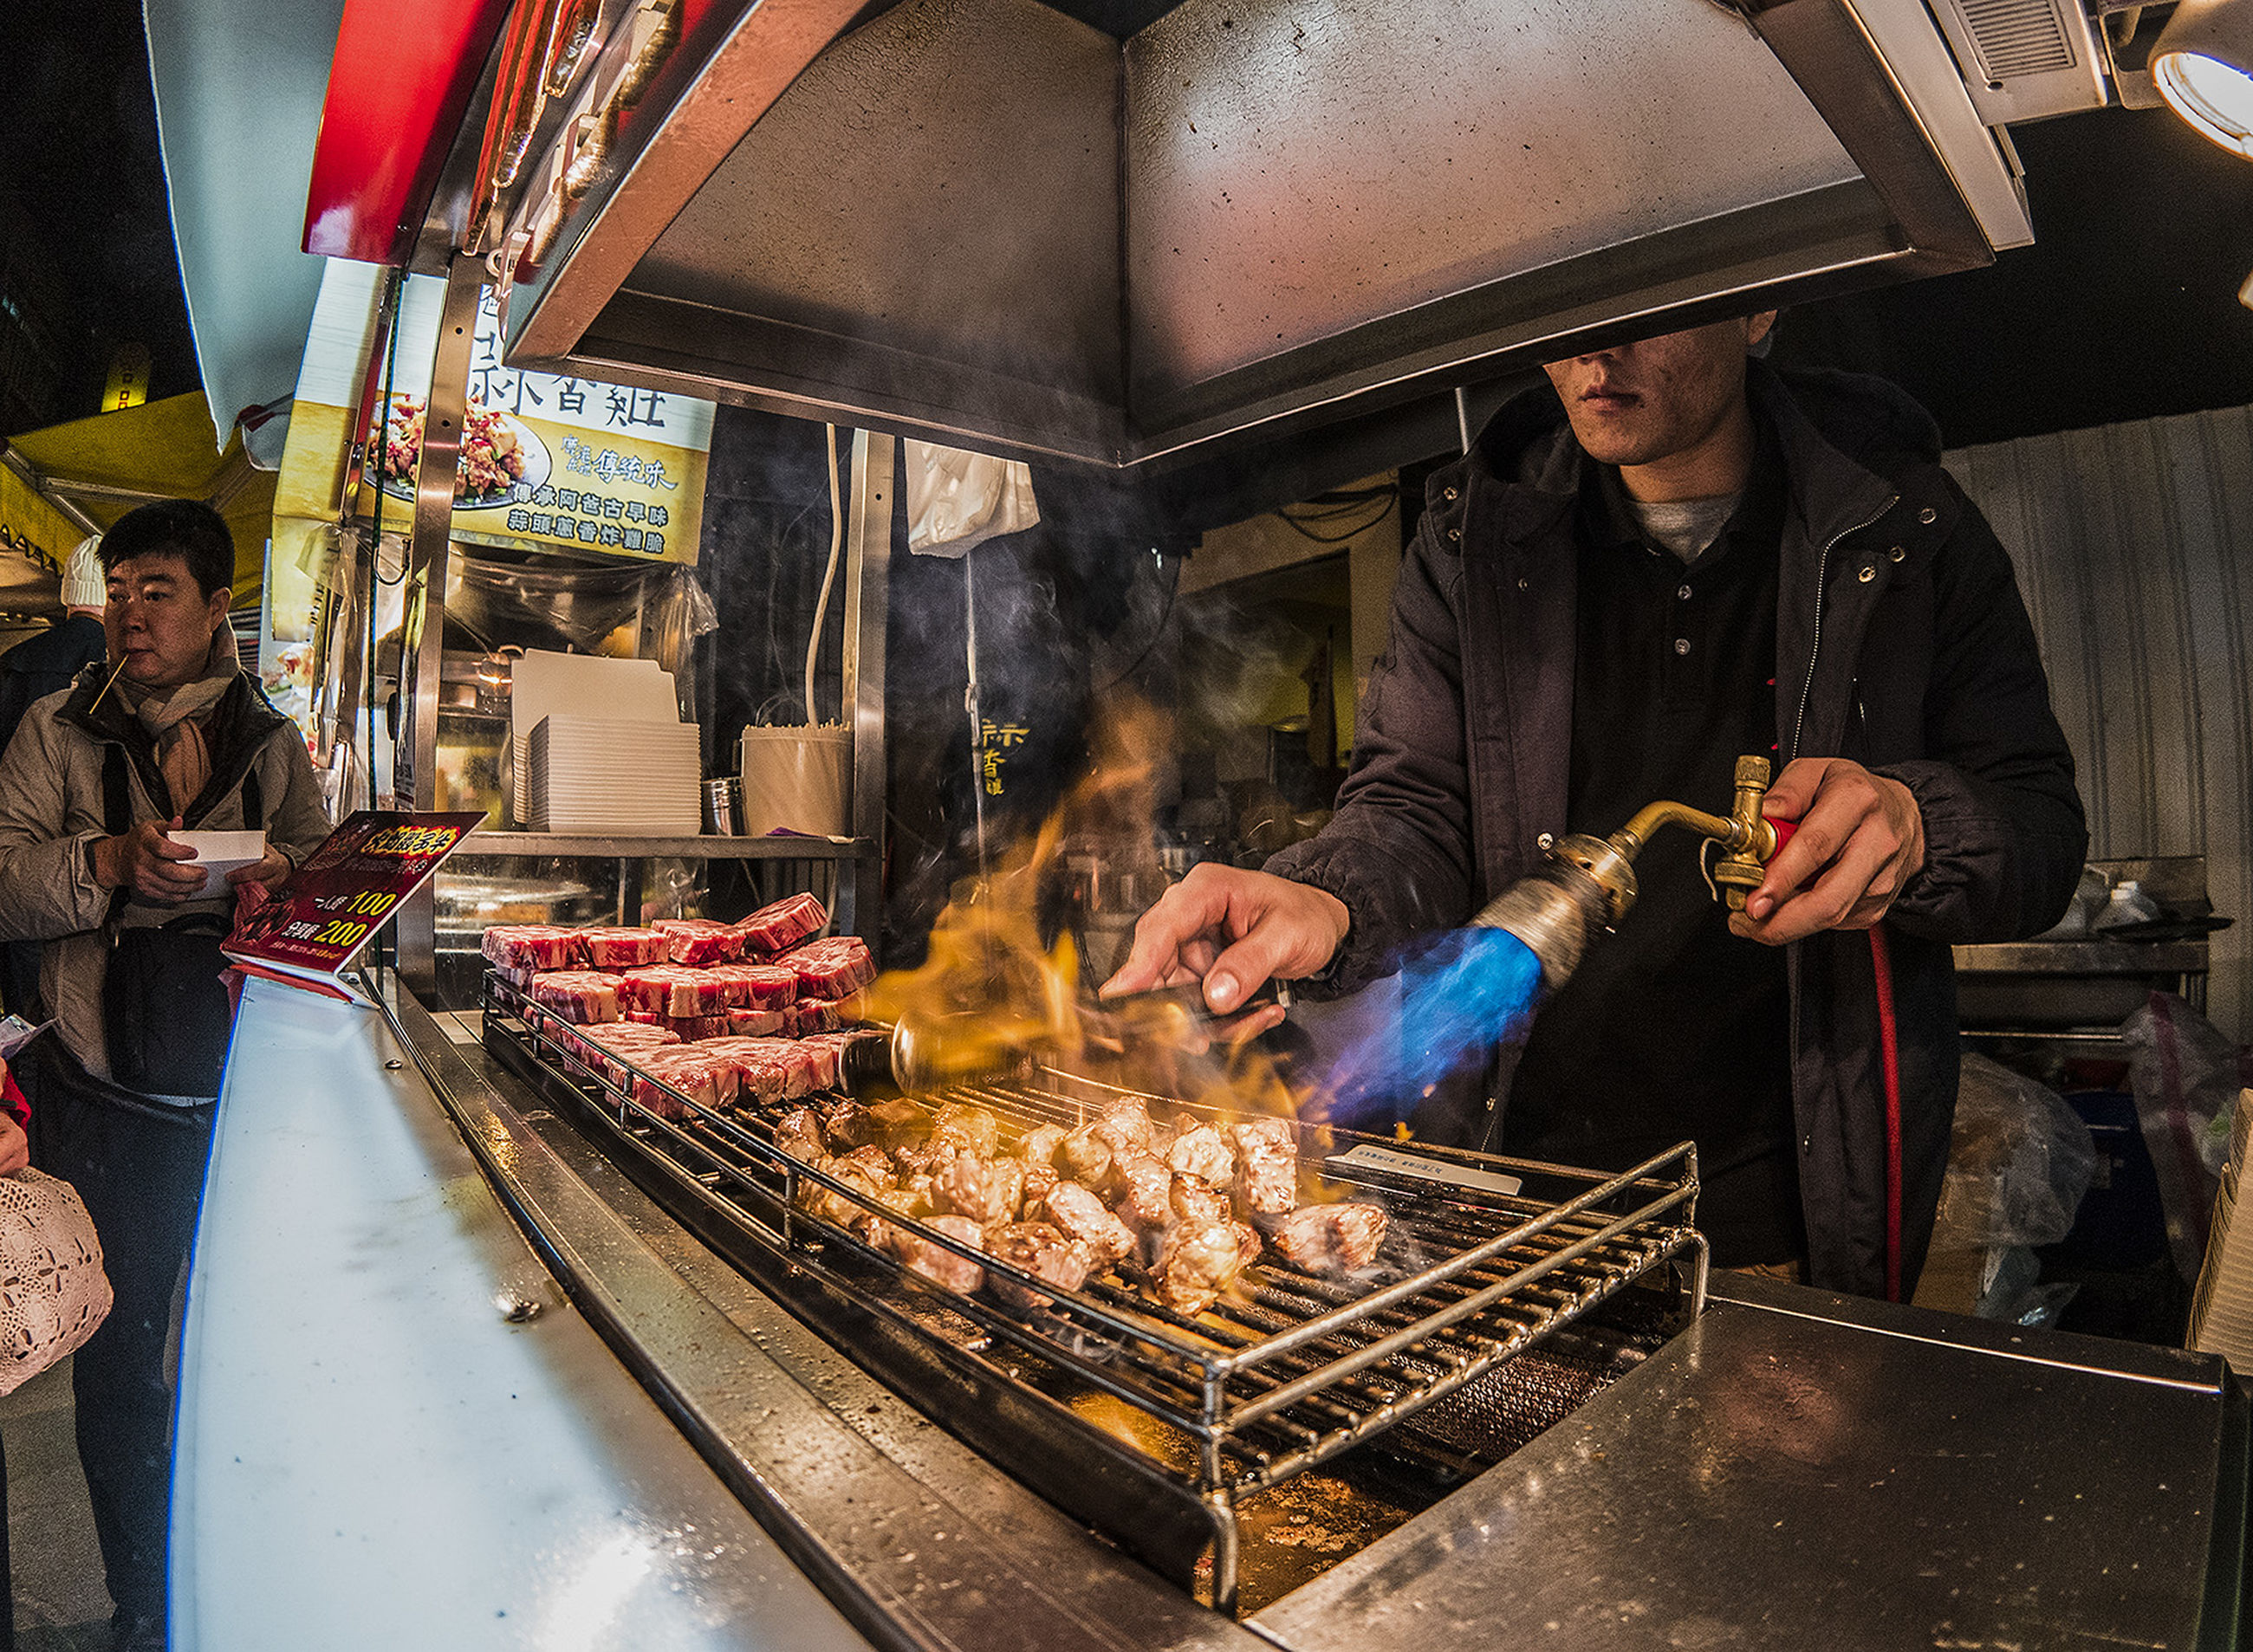 food and drink, food, lifestyles, freshness, preparation, holding, working, indoors, casual clothing, occupation, leisure activity, cooking, preparing food, meat, retail, barbecue grill, men, barbecue